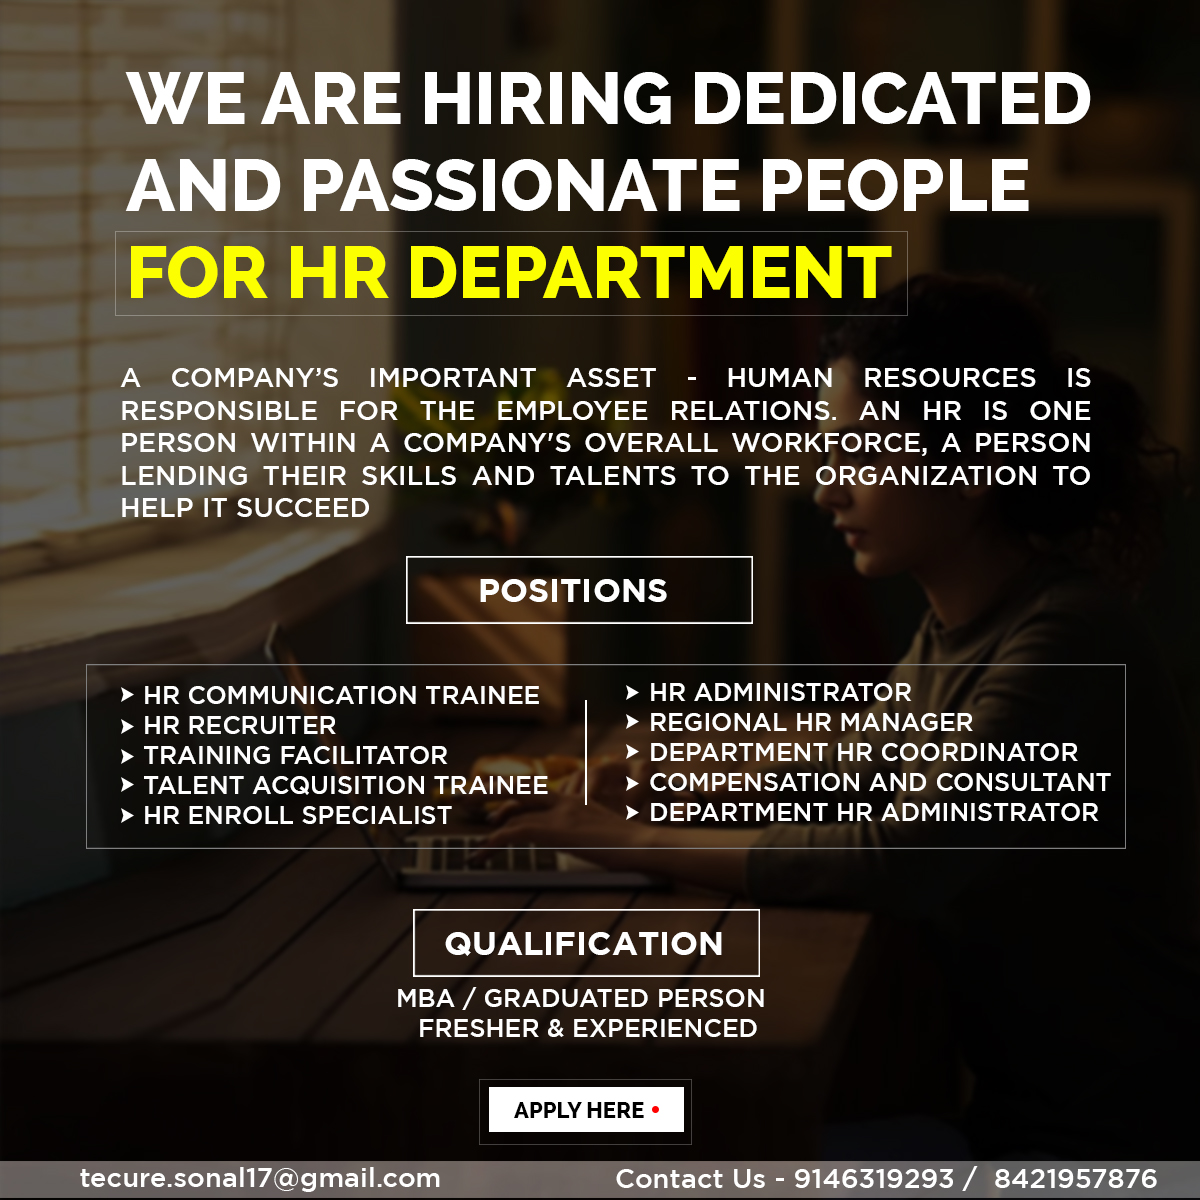 Looking for passionate people for HR Department